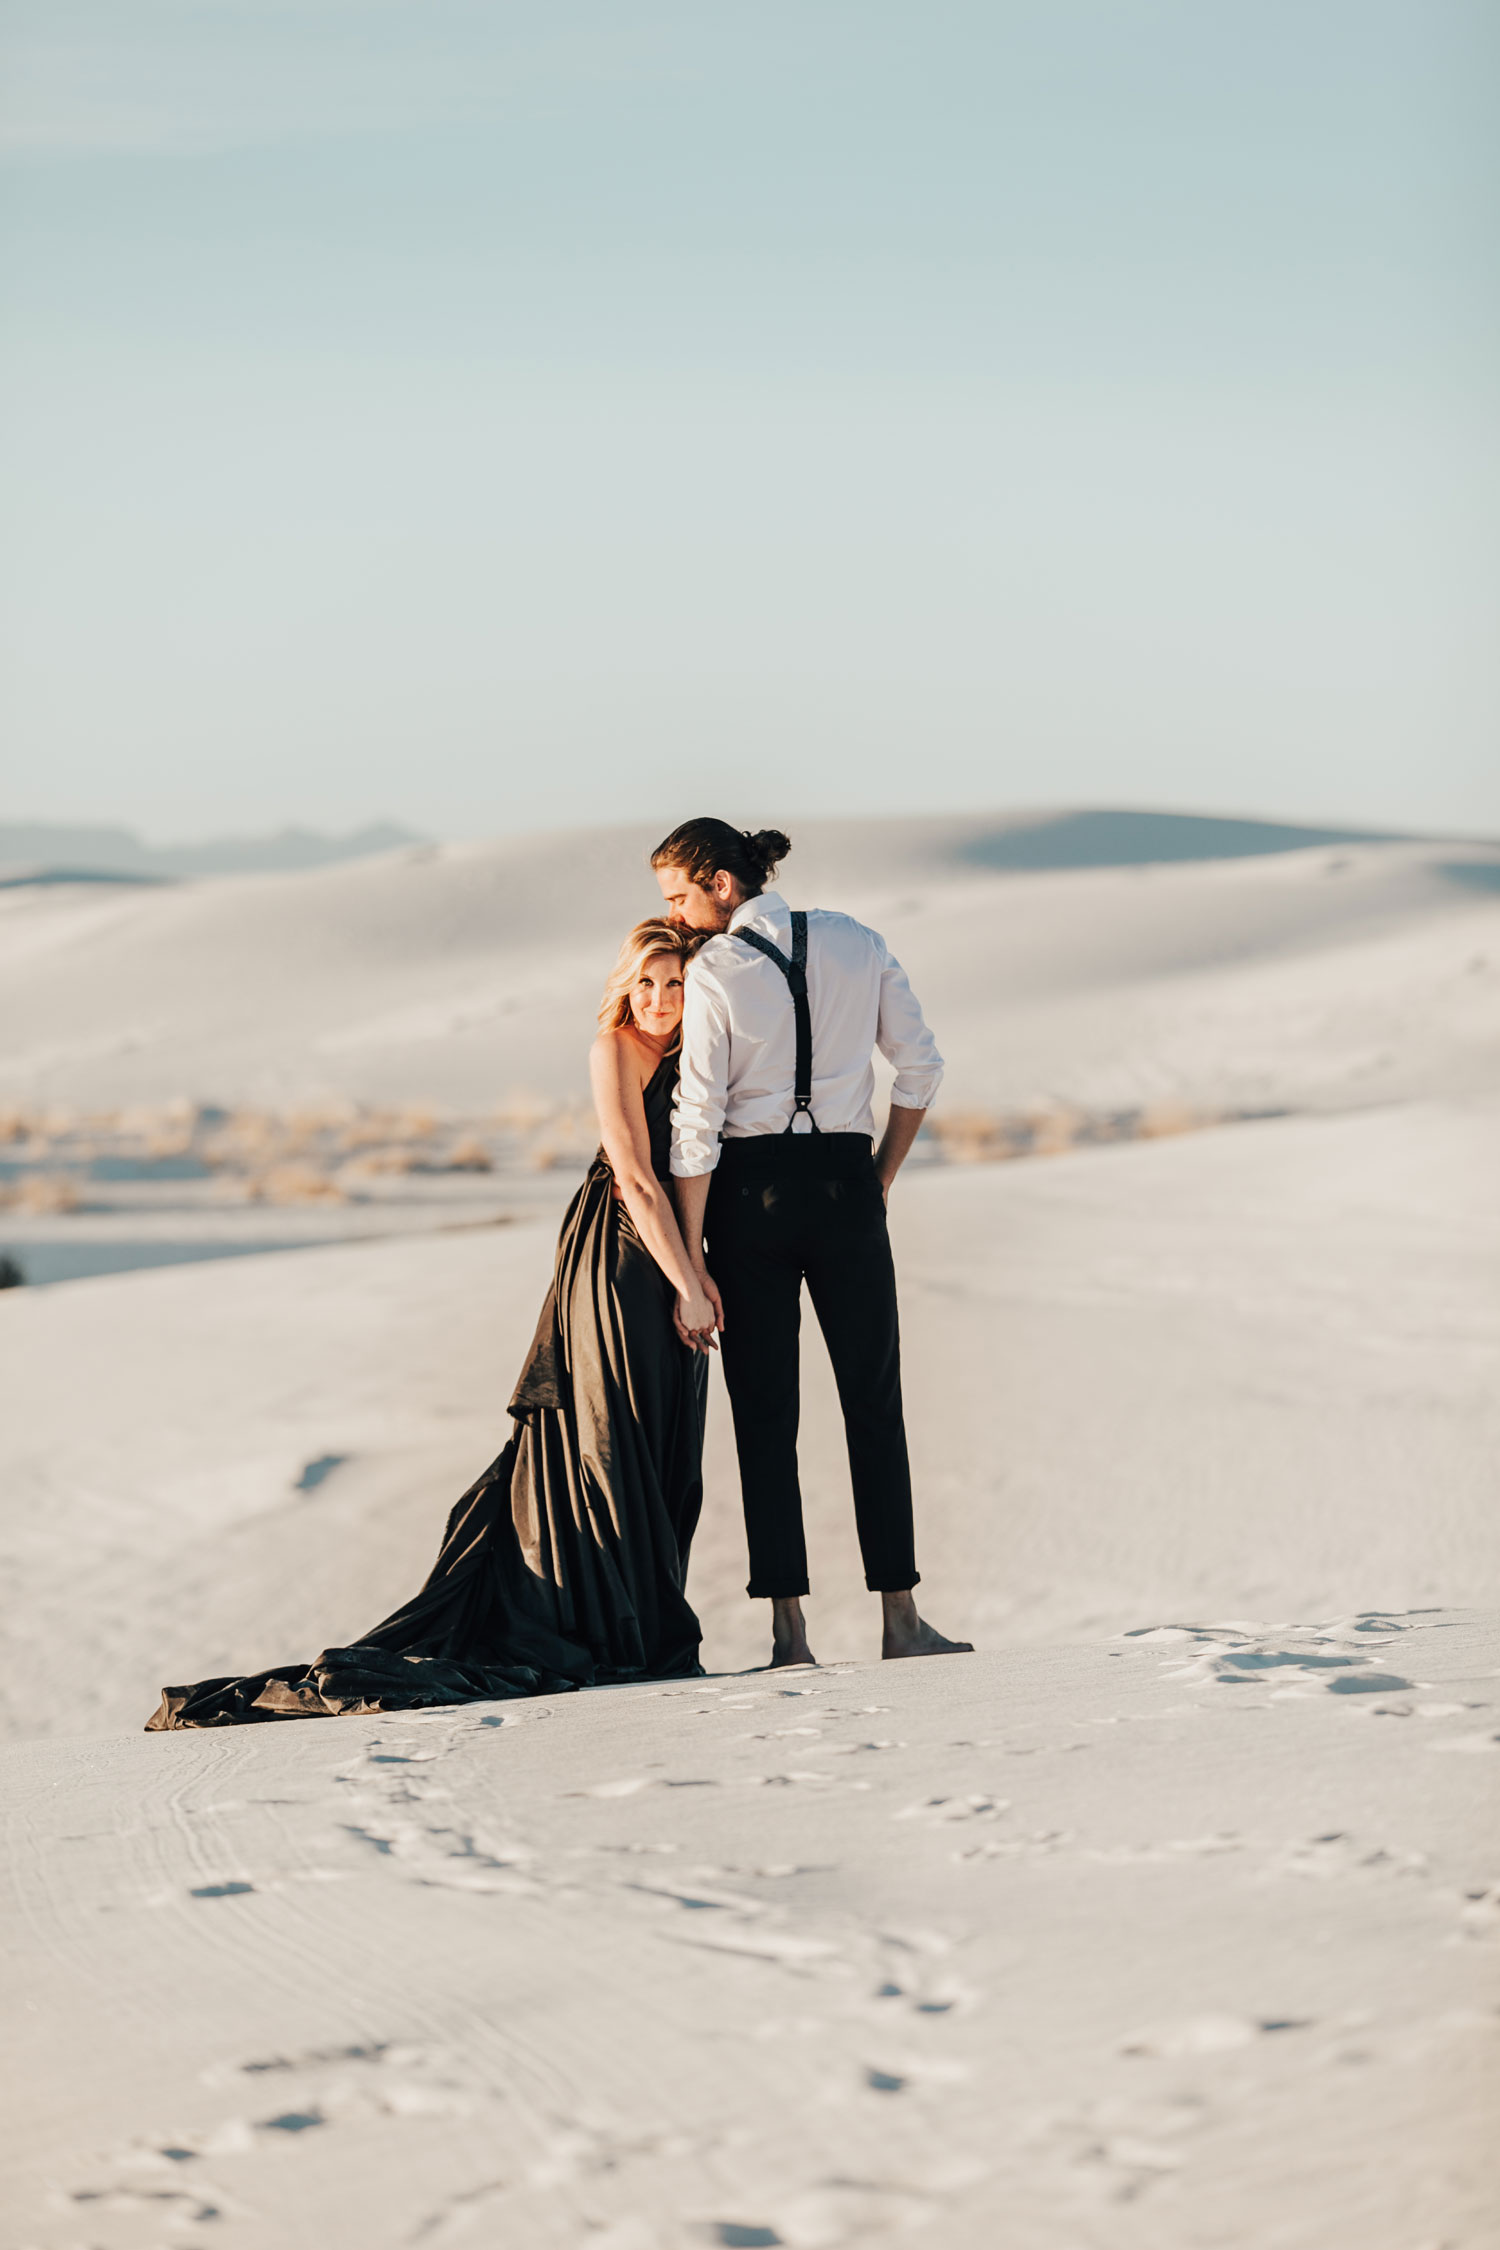 engagement photo shoot at White Sands National Monument in New Mexico engagement photos barefoot sunset photo